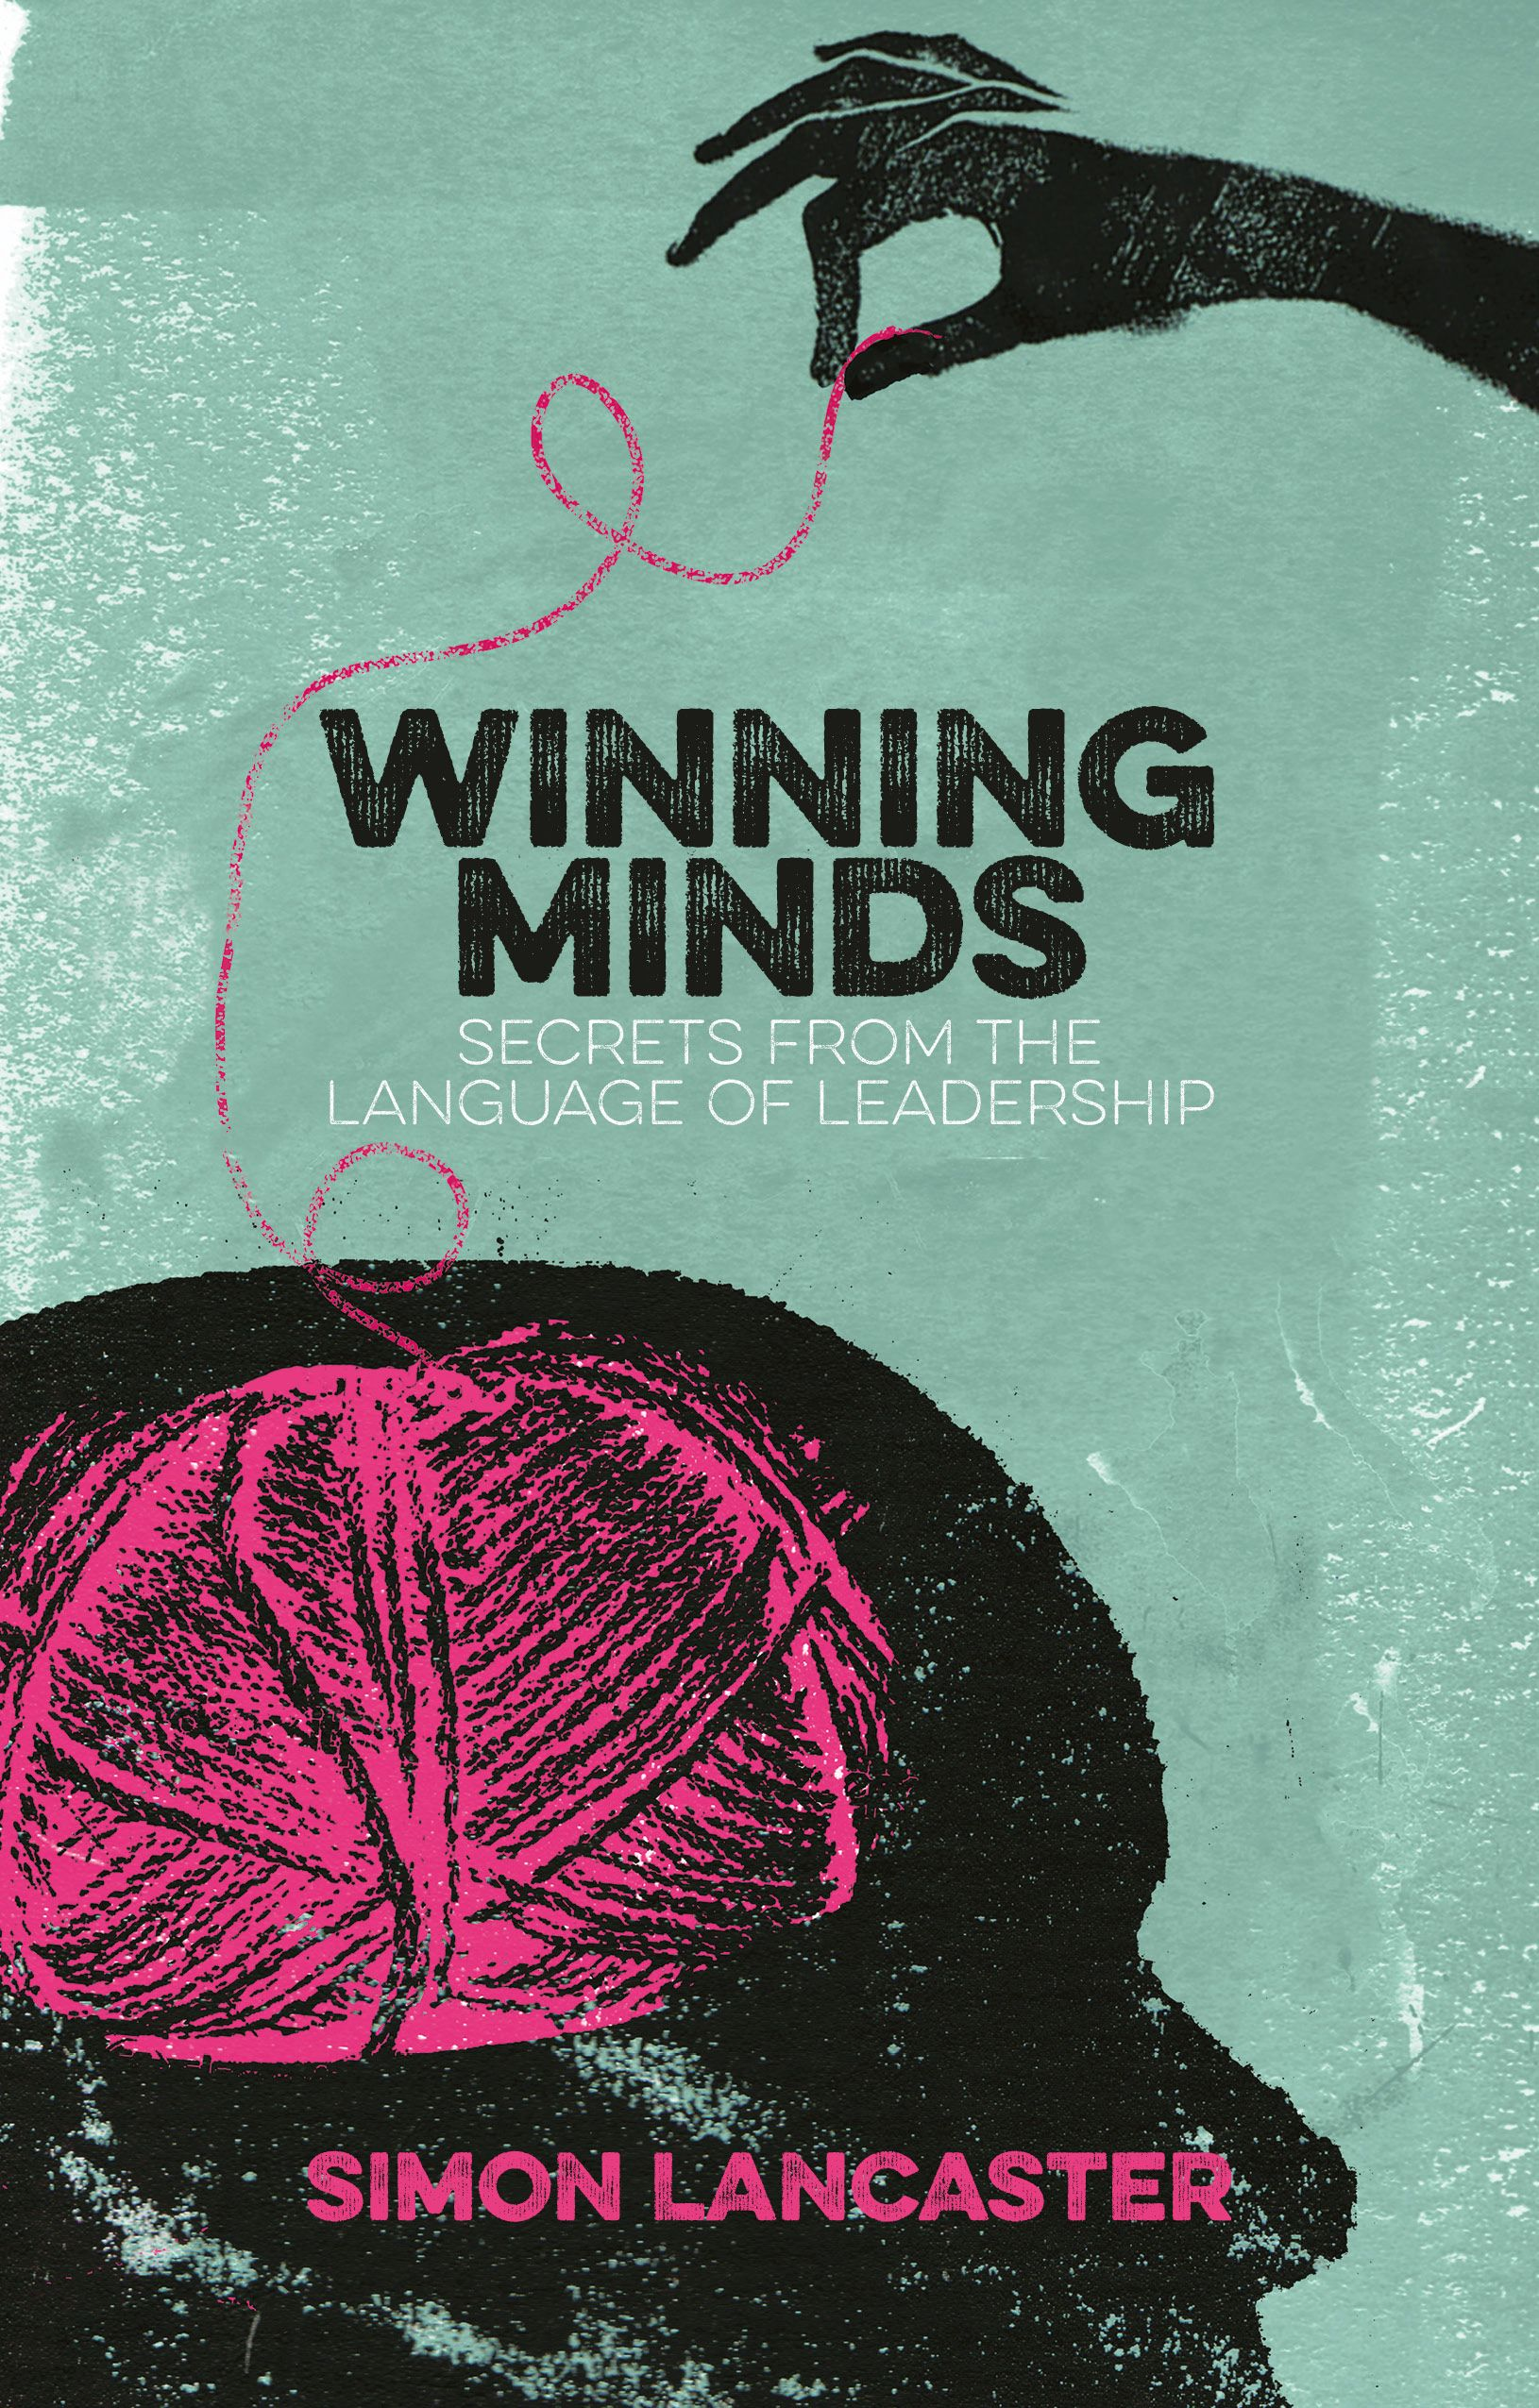 Libros De Macmillan Winning Minds Book Cover Palgrave Macmillan Book Covers